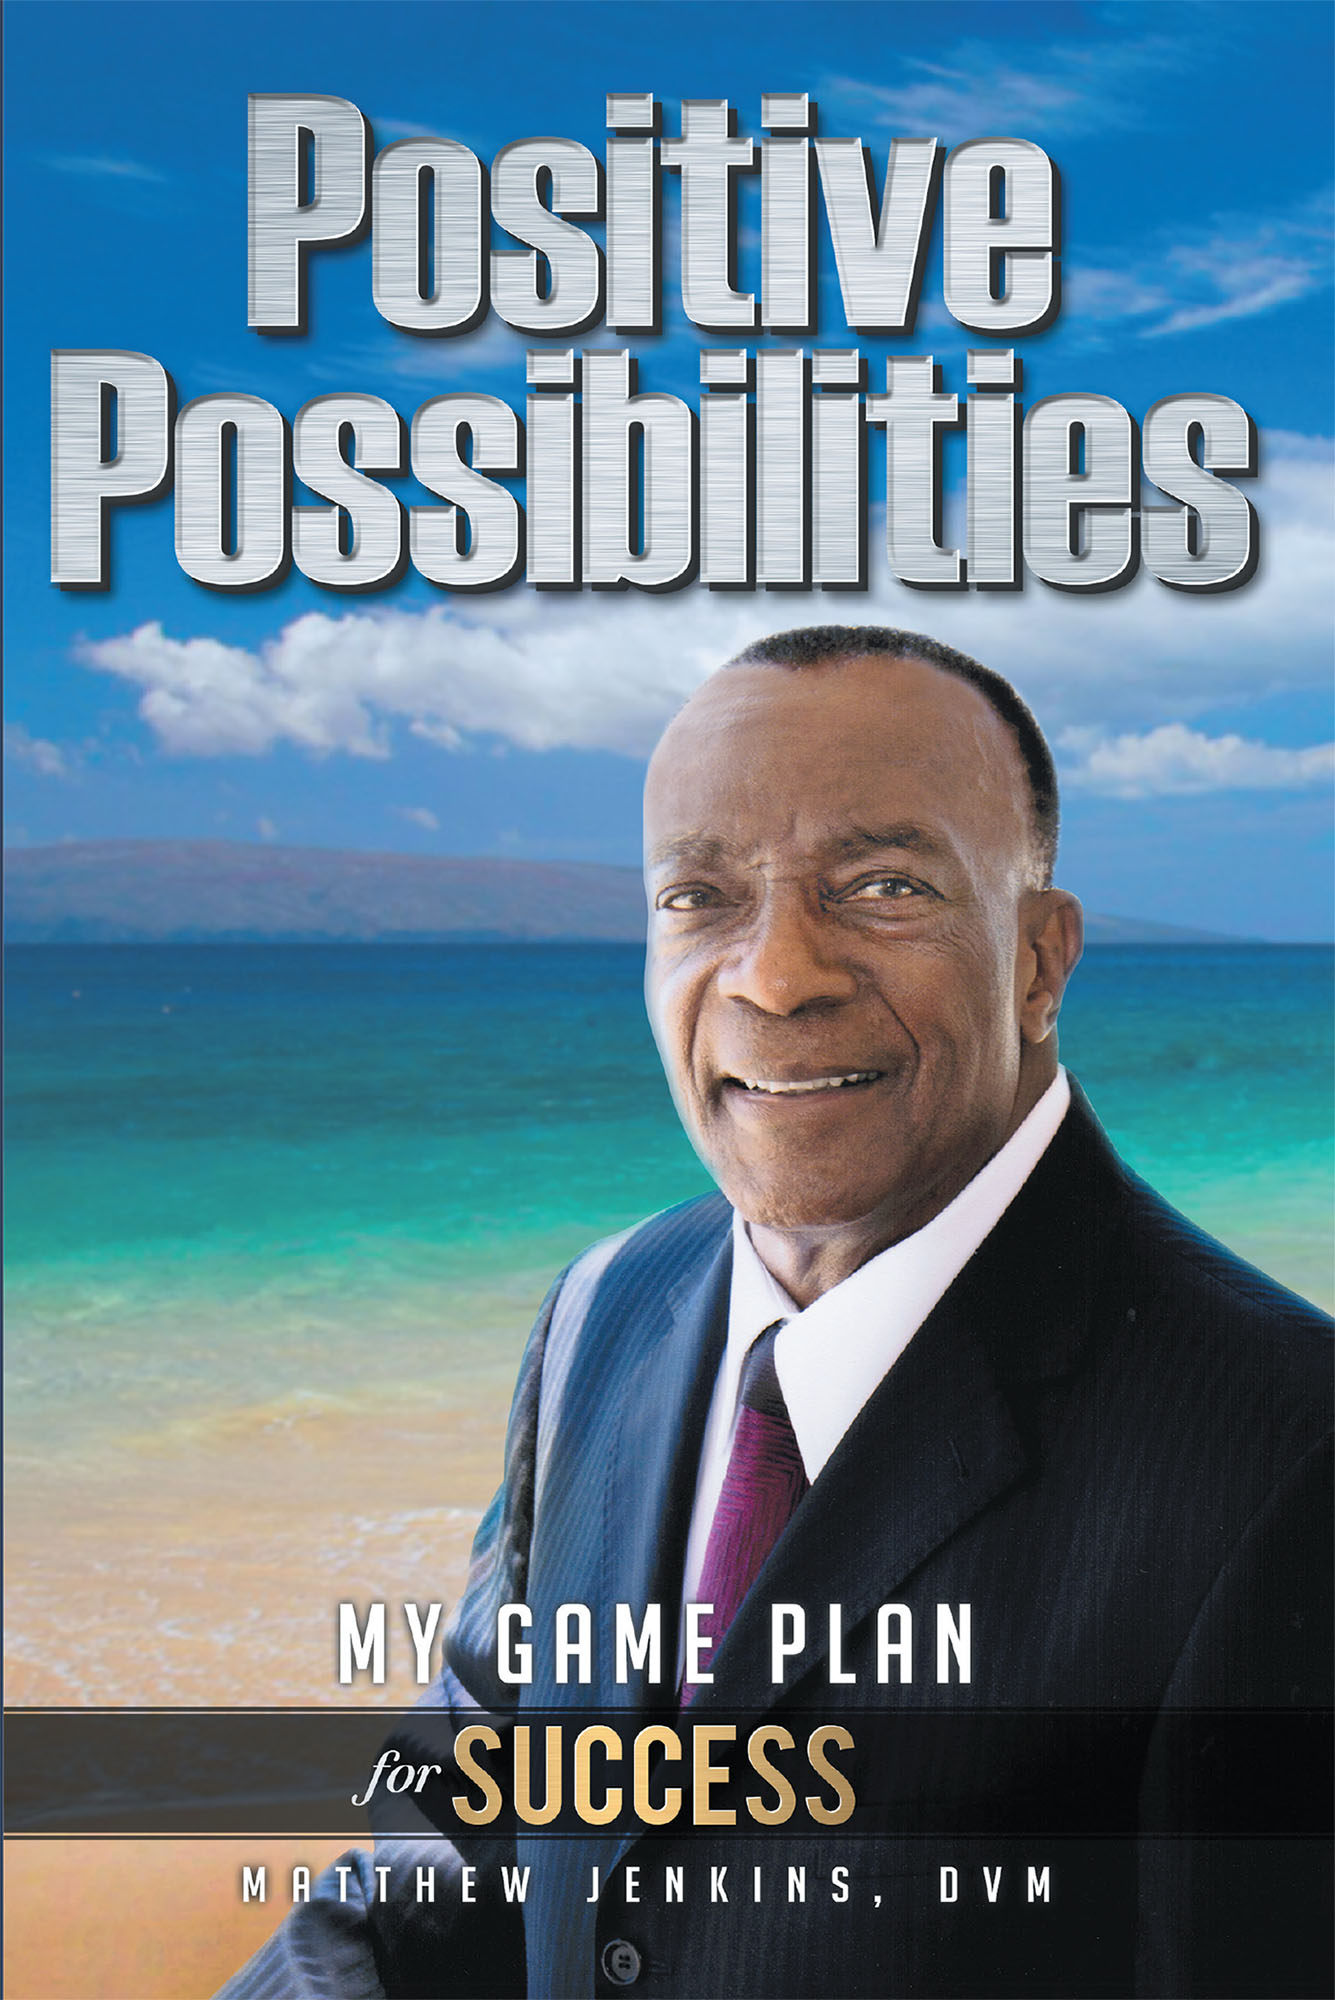 Dr. Matthew Jenkins' Positive Possibilities: My Game Plan for Success 99 Cents Three-Day Book Sale Kicks Off May 20th-23rd on Kindle/Amazon